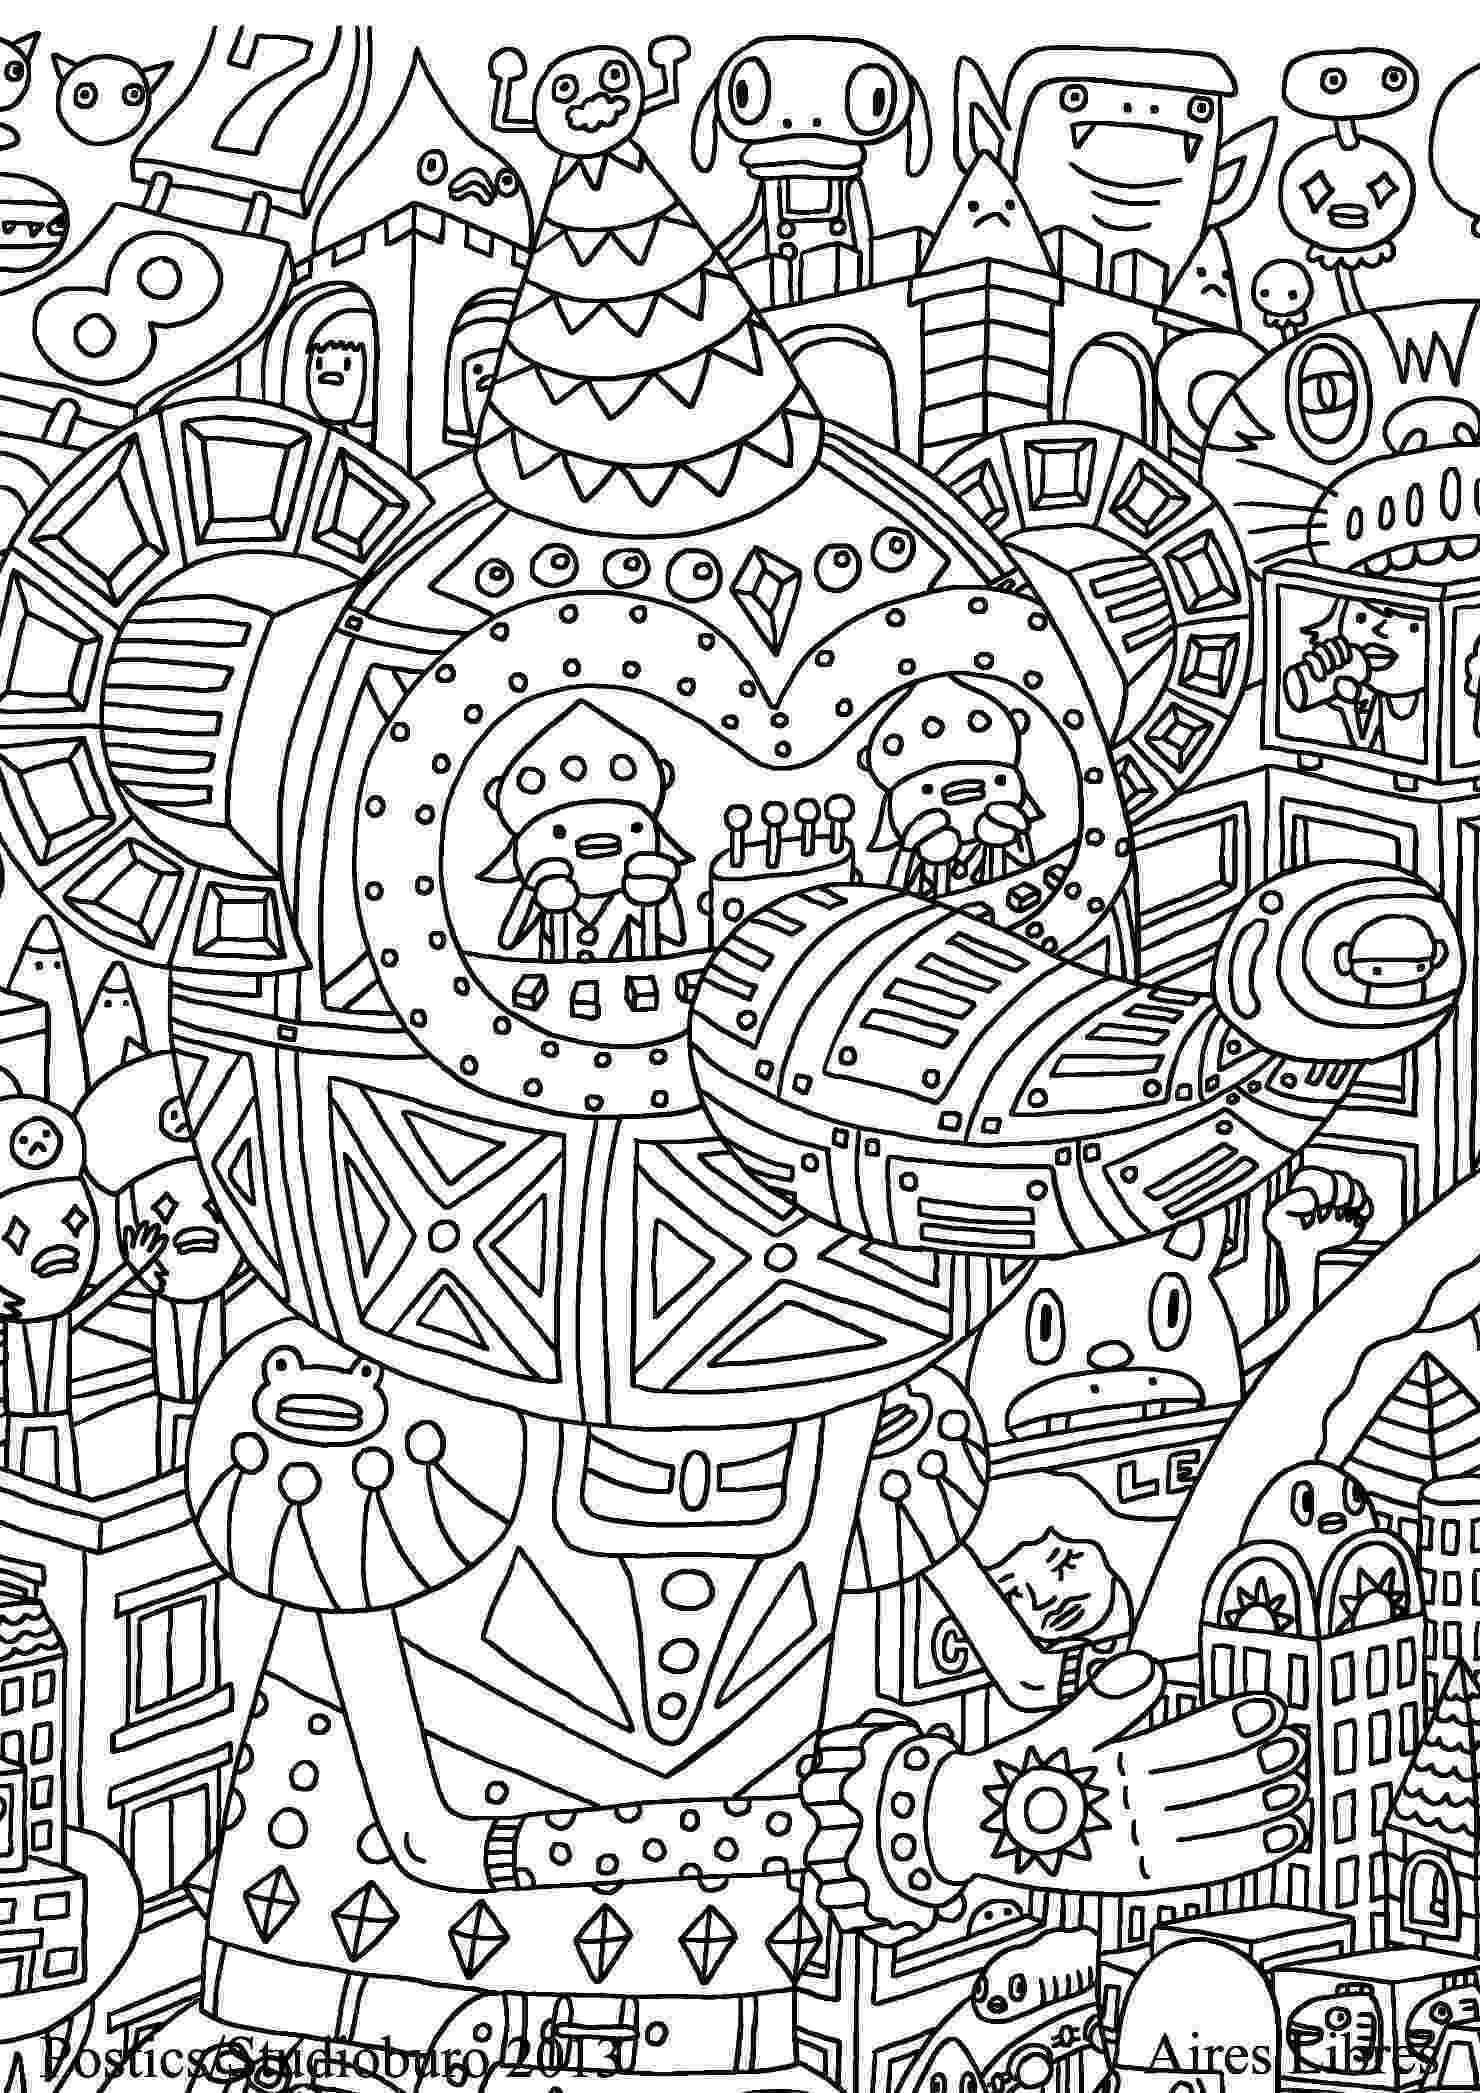 doodle art colouring cn39s drawing candy sweet january 2013 art colouring doodle